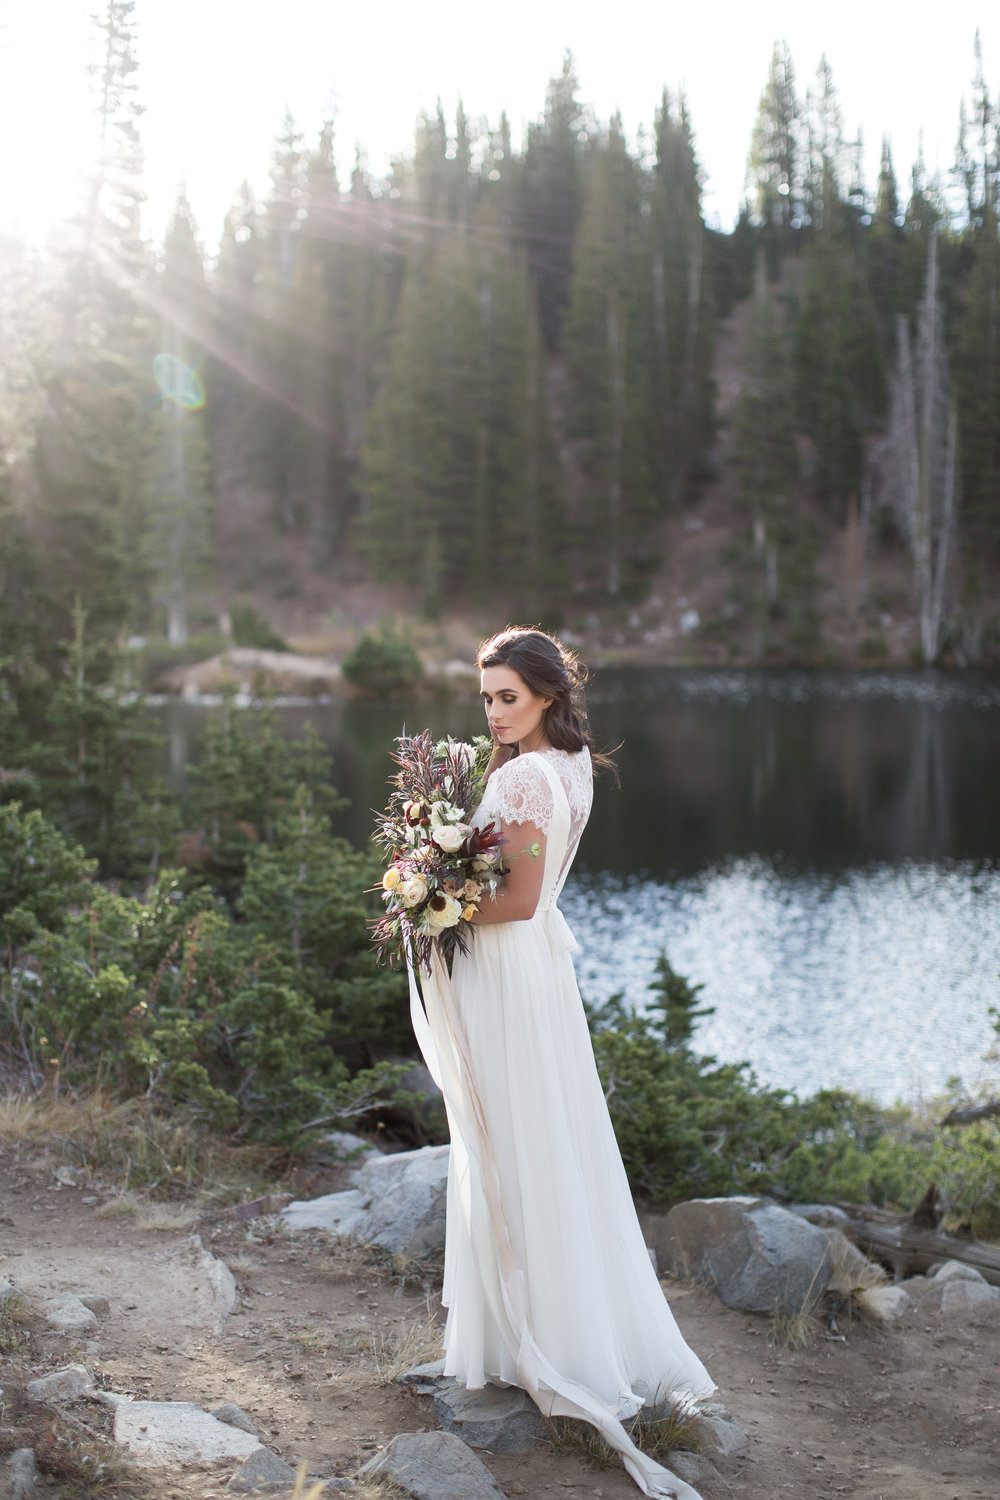 UtahValleyBrideShootTR2016 (91 of 110).jpg